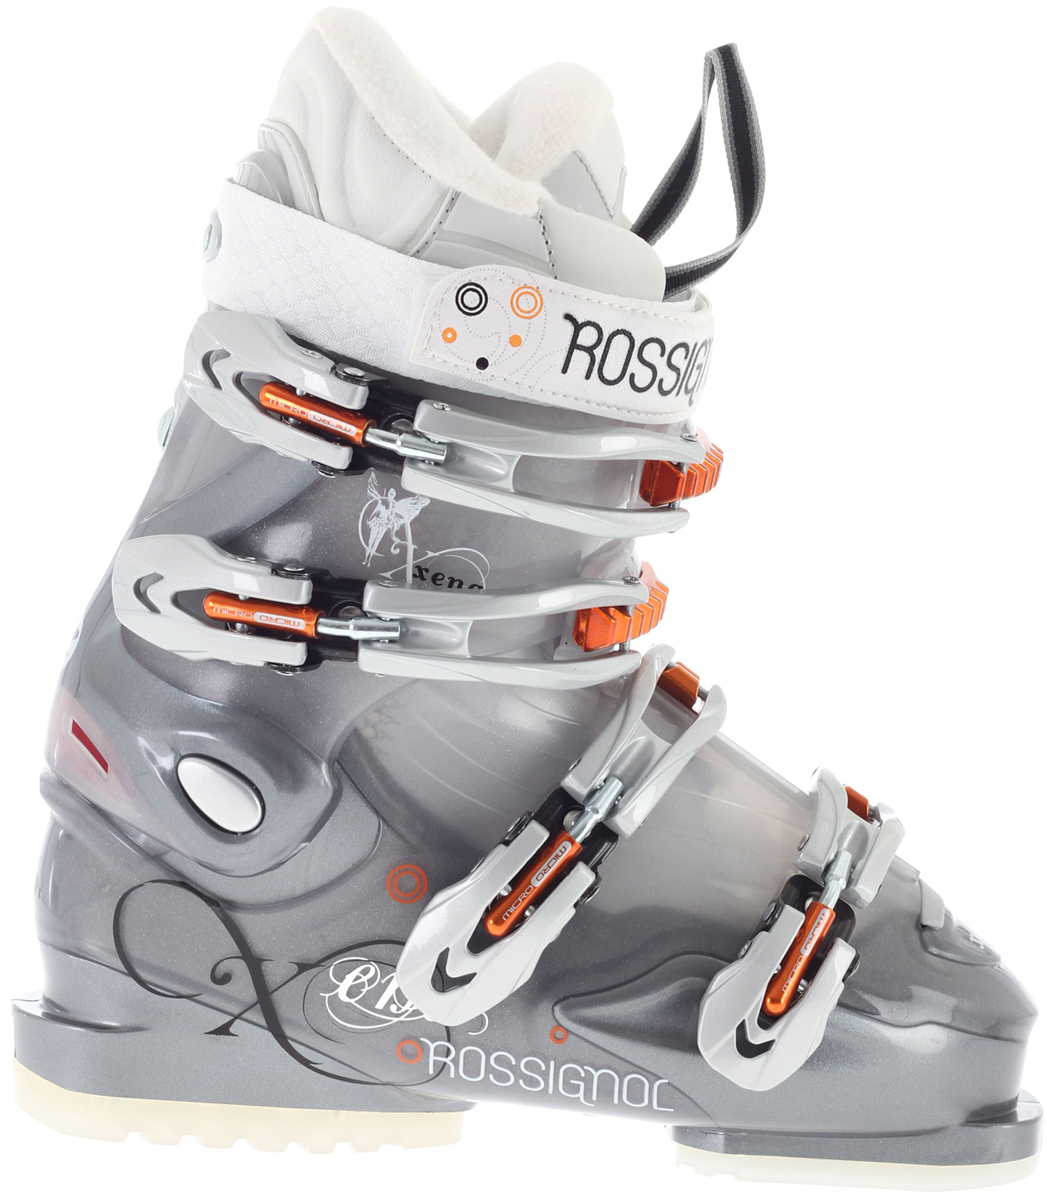 Ski The Rossignol Xena X50 Ski Boot is for intermediate and progressing women skiers looking for an easy-to-enter boot with high skiability.Key Features of the Rossignol Xena X50 Women's Ski Boots: Flex: 60/50 Last: 104mm - $161.95